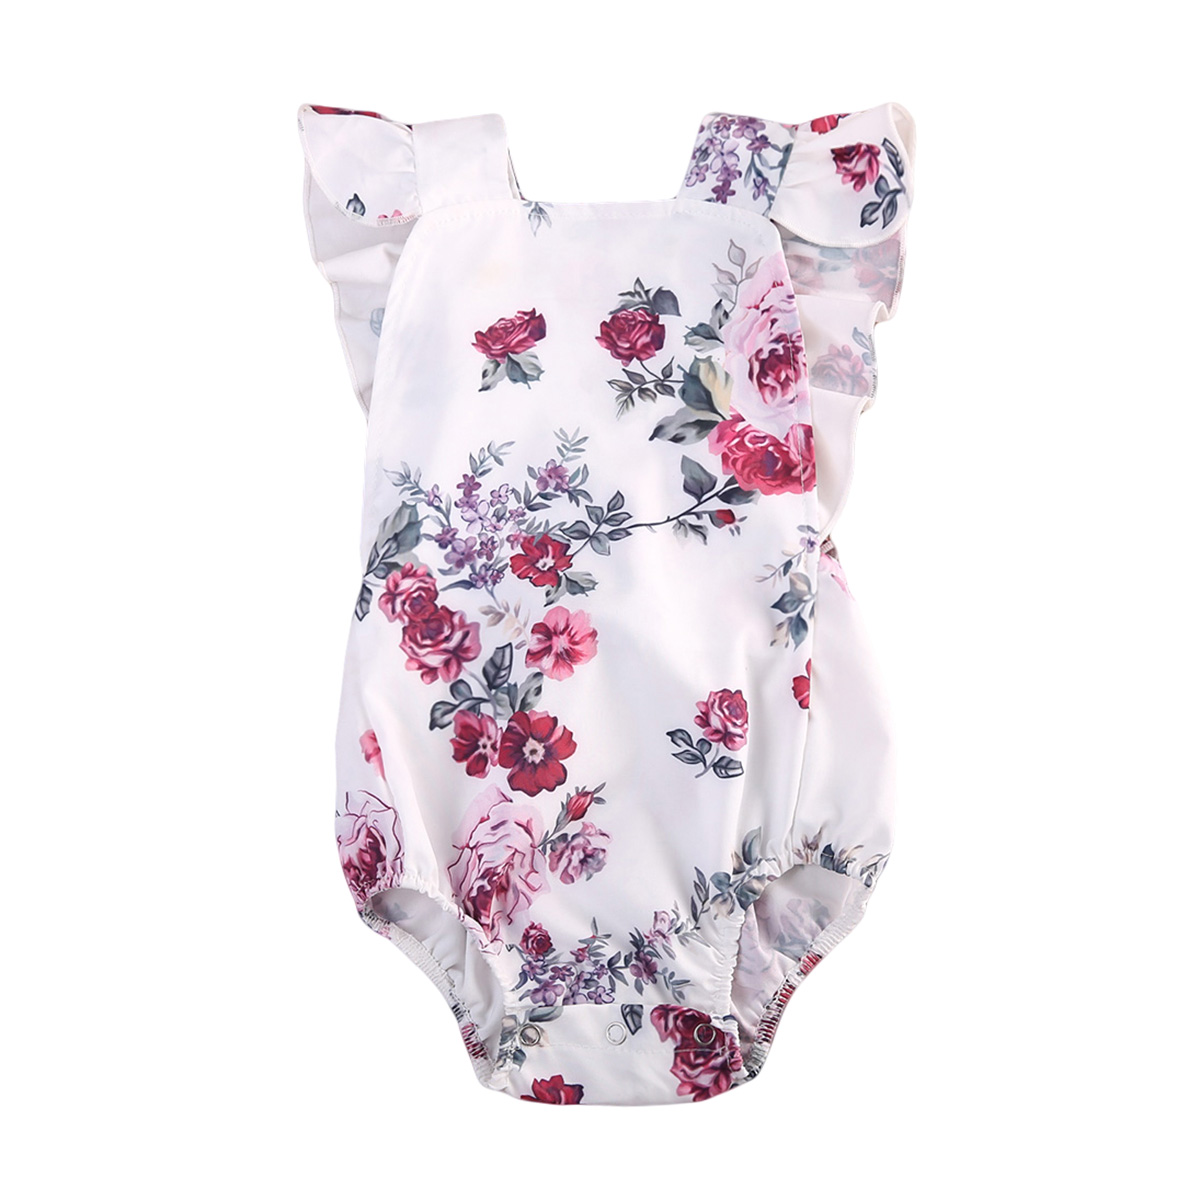 Flower Baby Girl Clothing Newborn Infant Baby Girl Clothes Floral Romper Jumpsuits Baby Casual One-pieces Outfit 0-18M